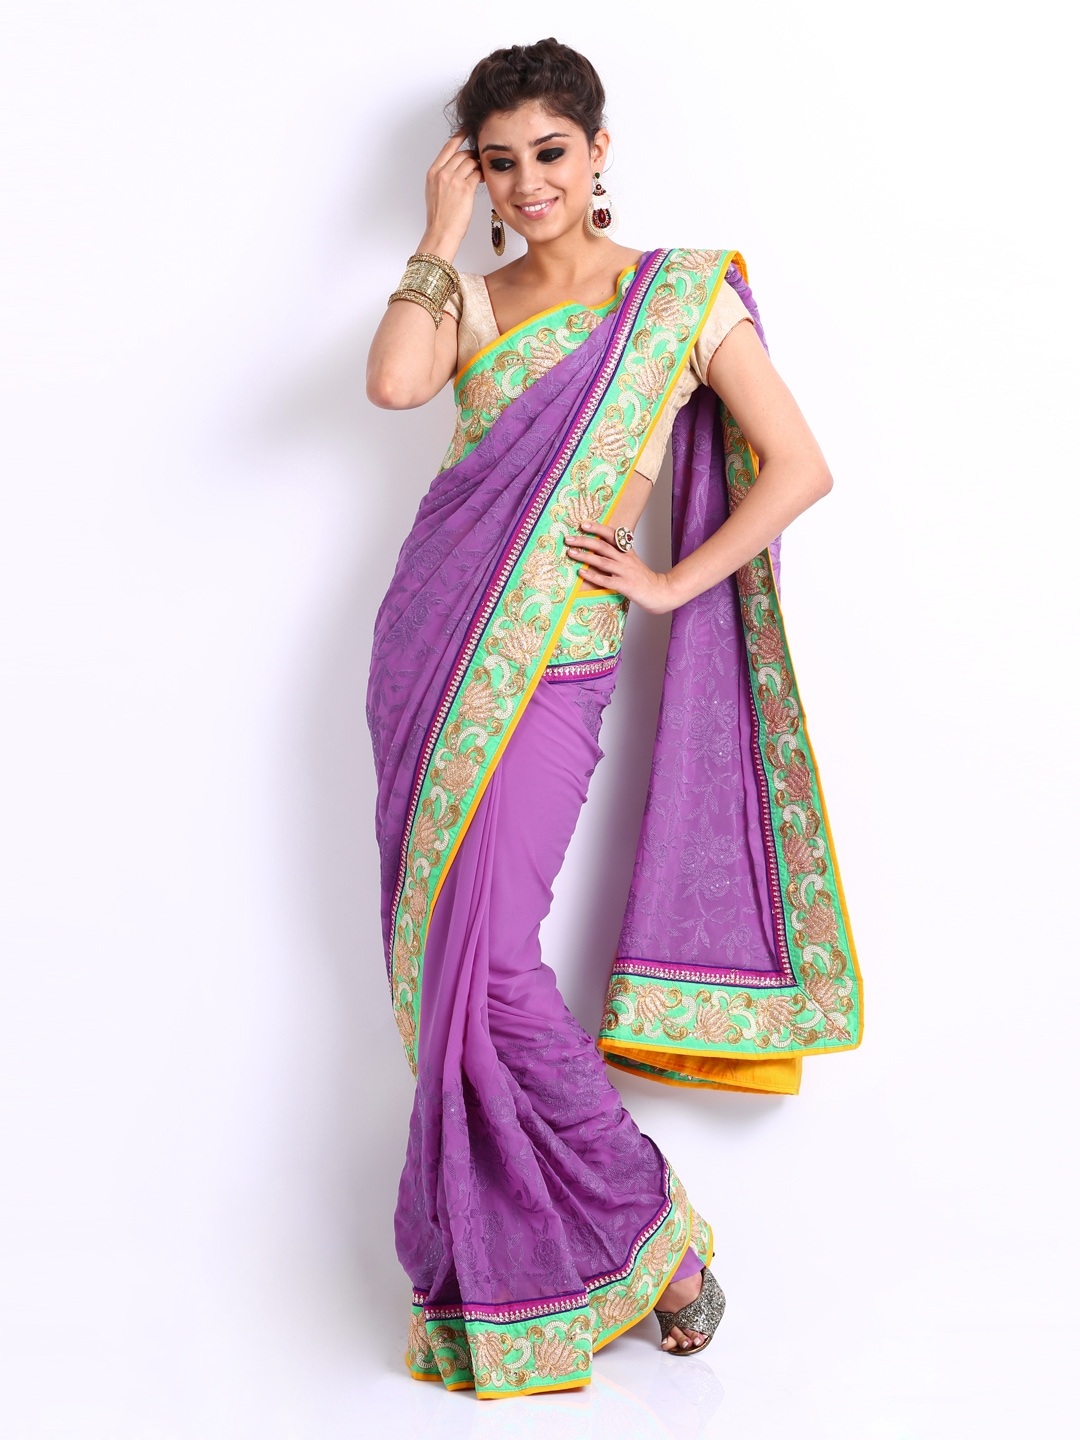 Ambica Purple Embroidered Georgette Fashion Saree available at Myntra for Rs.910020